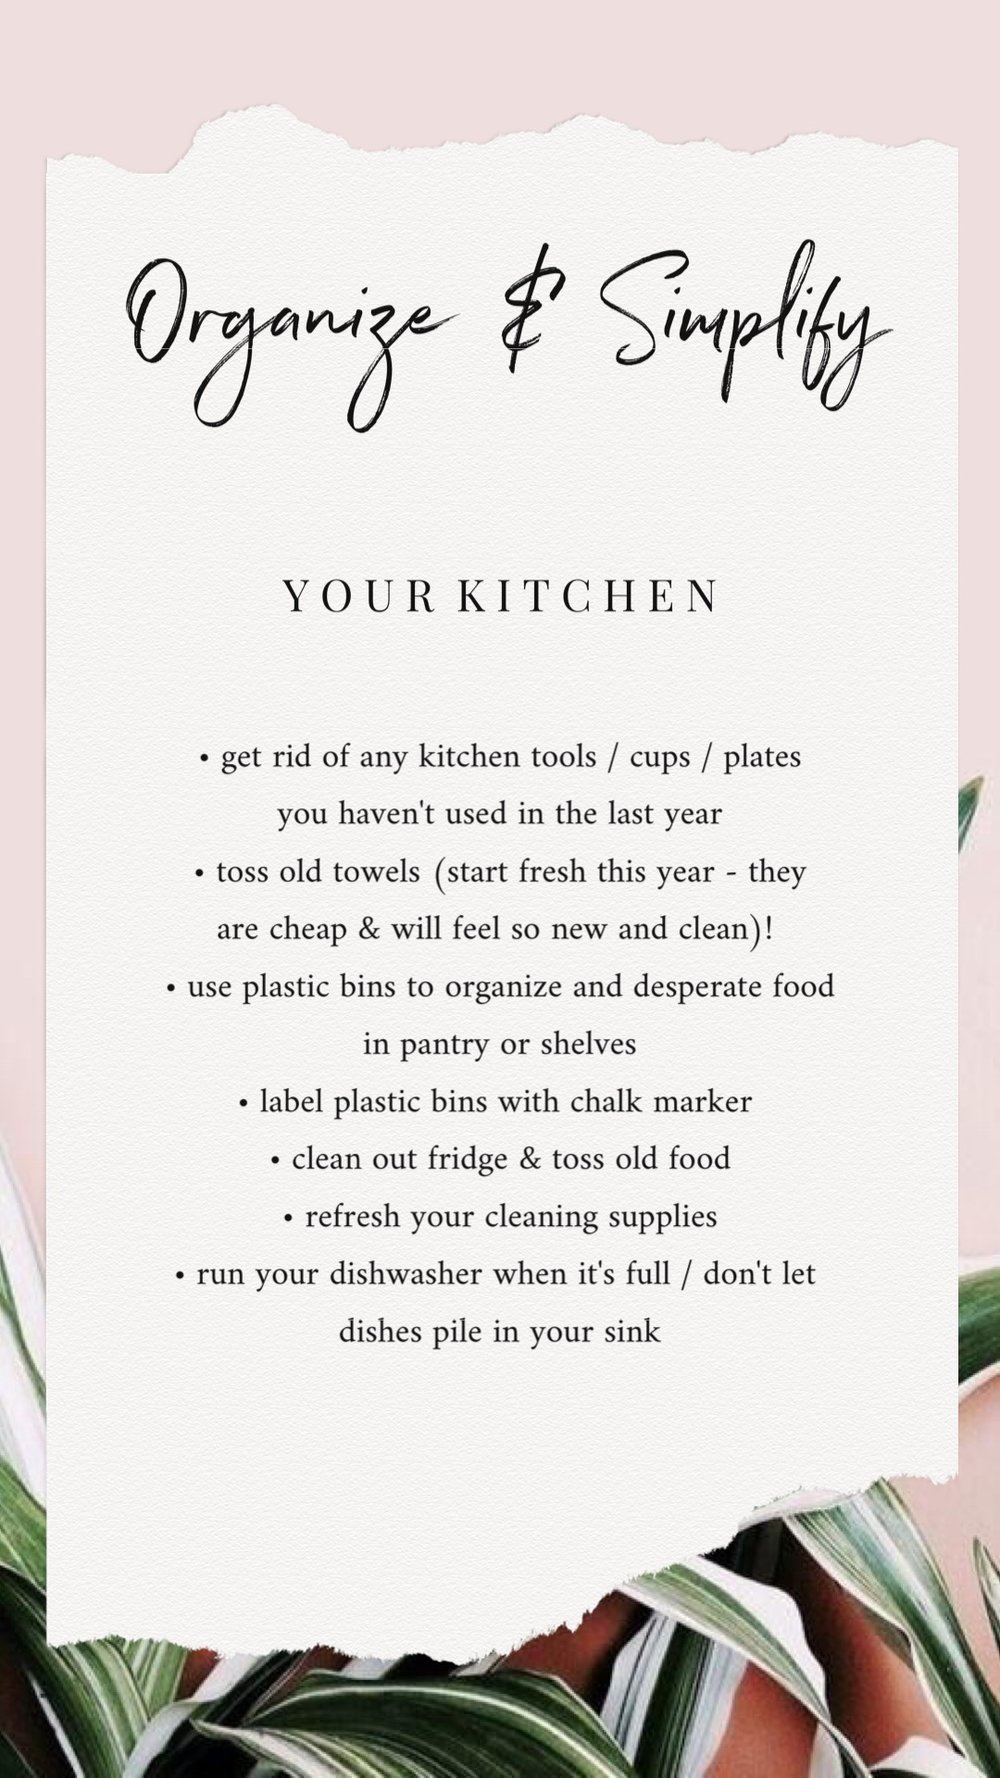 Bre Sheppard - How To Simplify & Organize Your Home - Your Kitchen.JPG